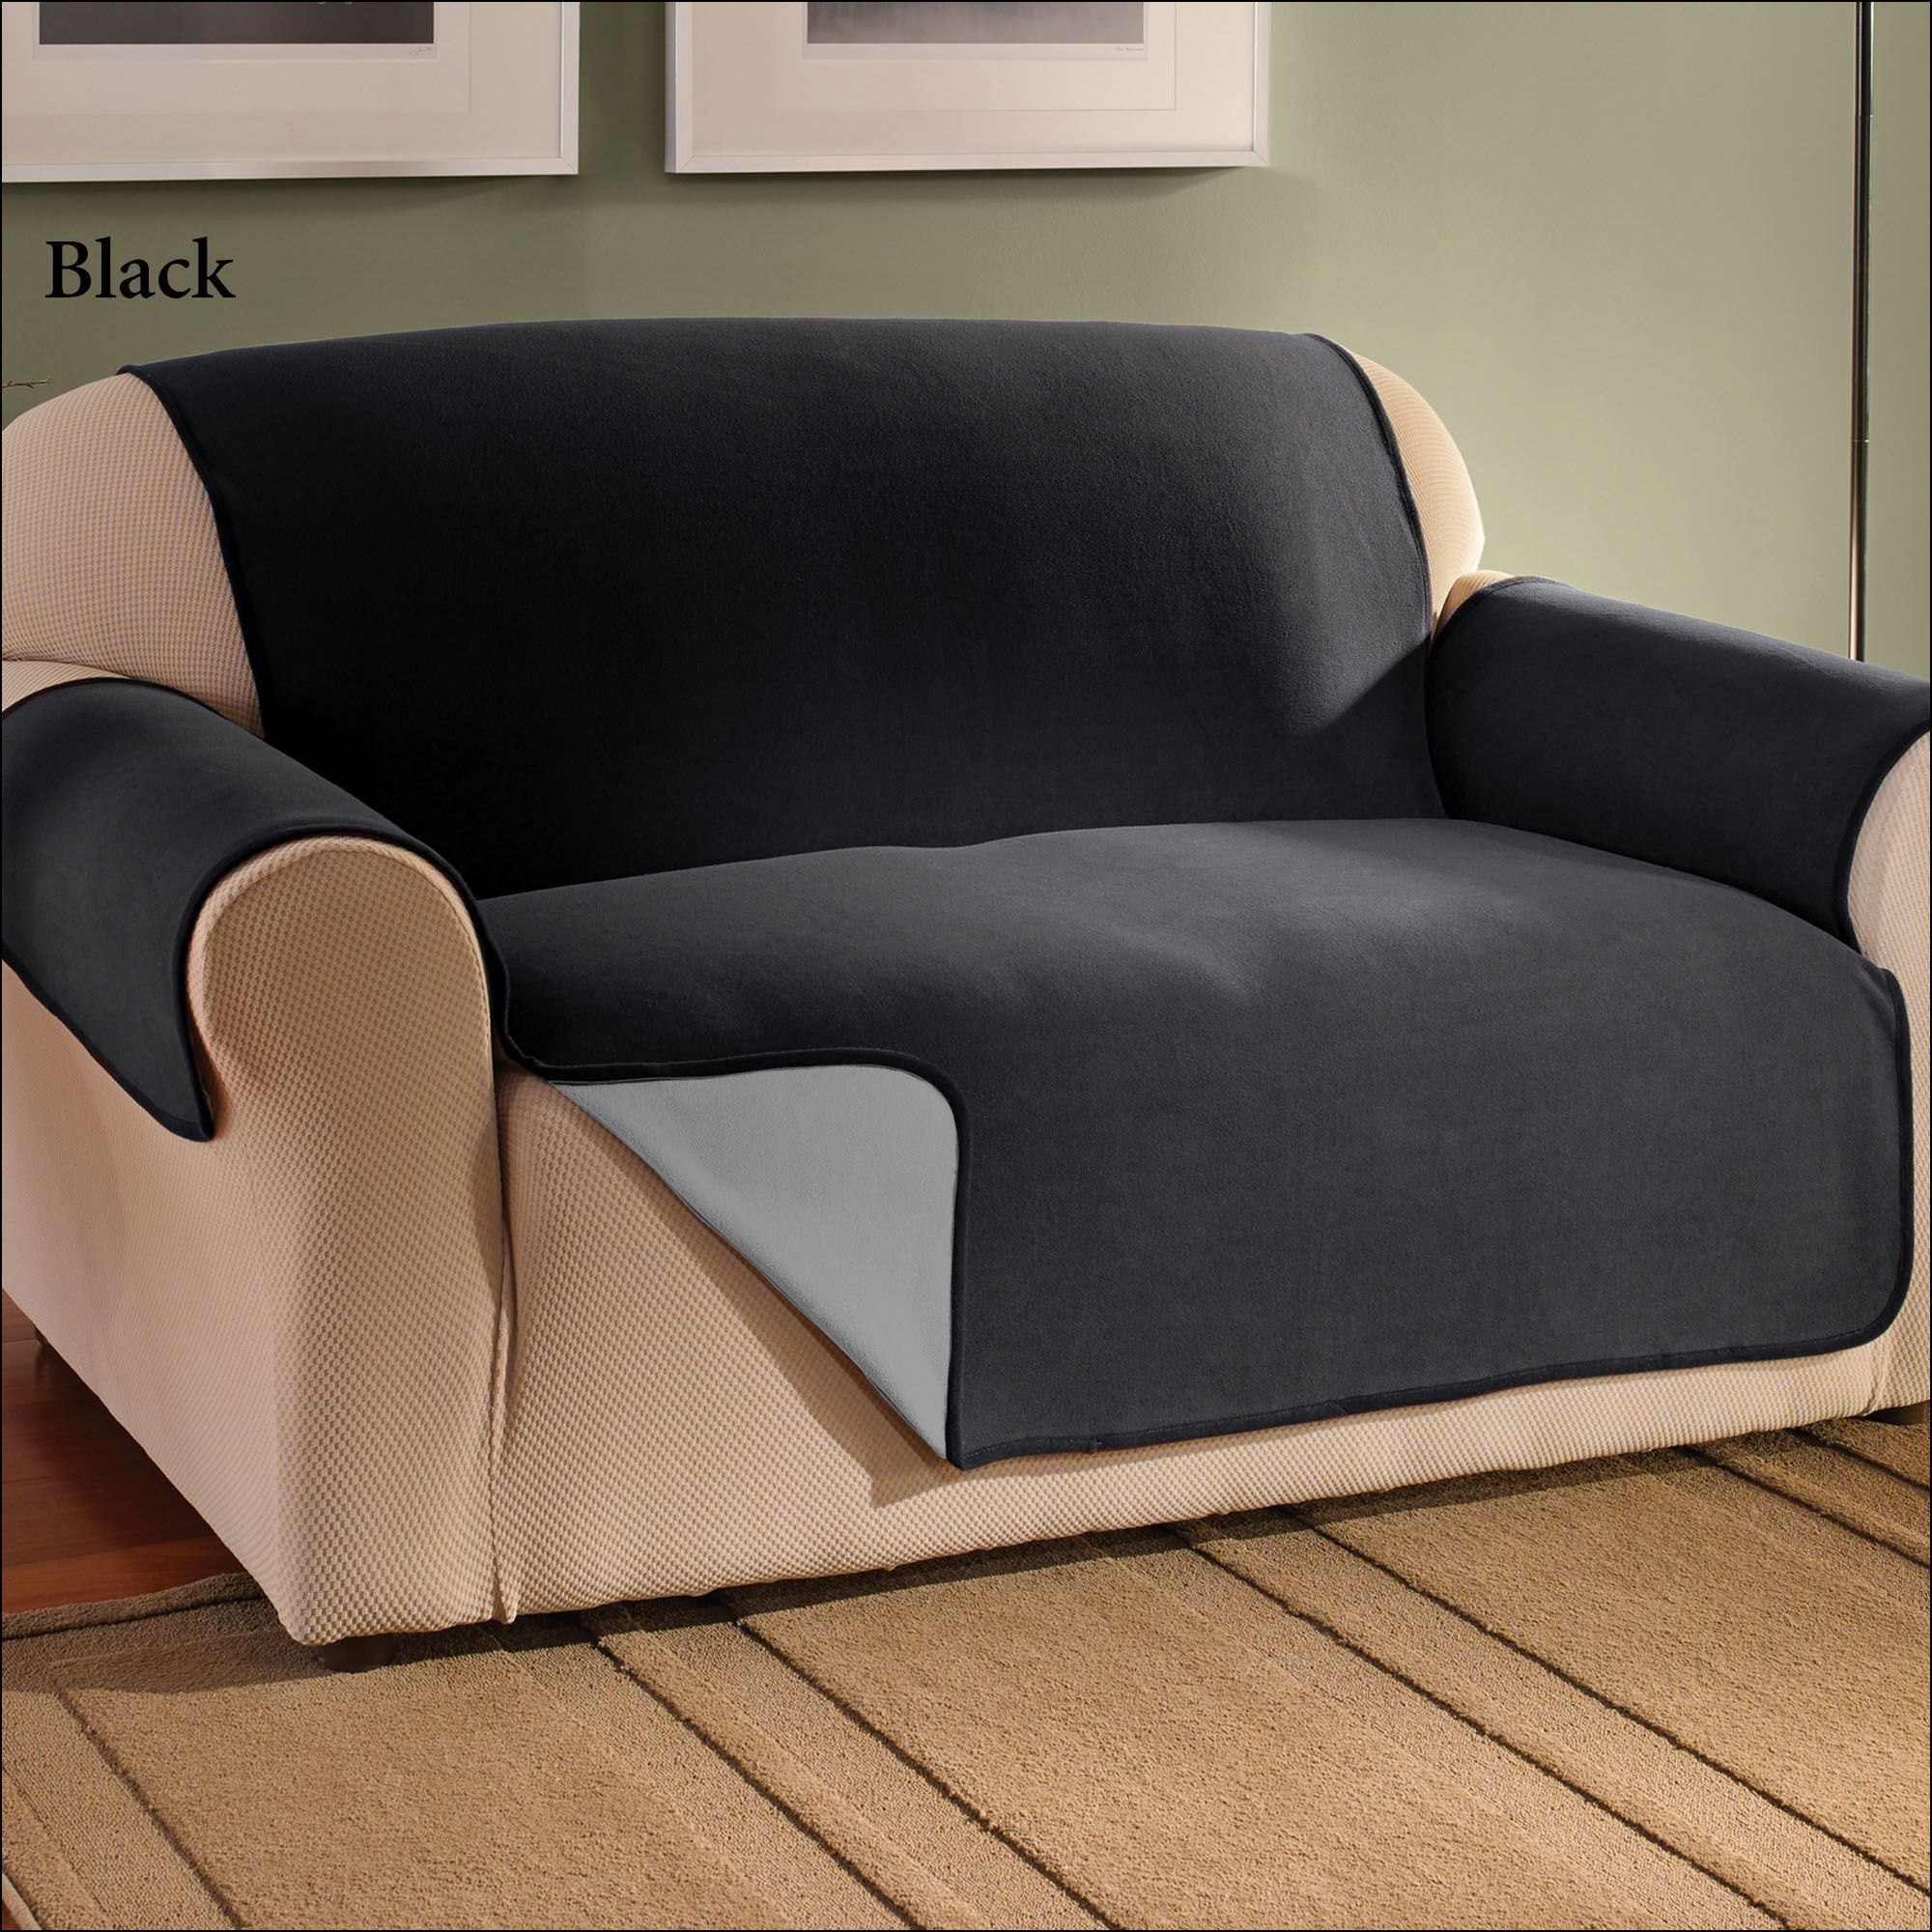 Furniture covers for leather couch